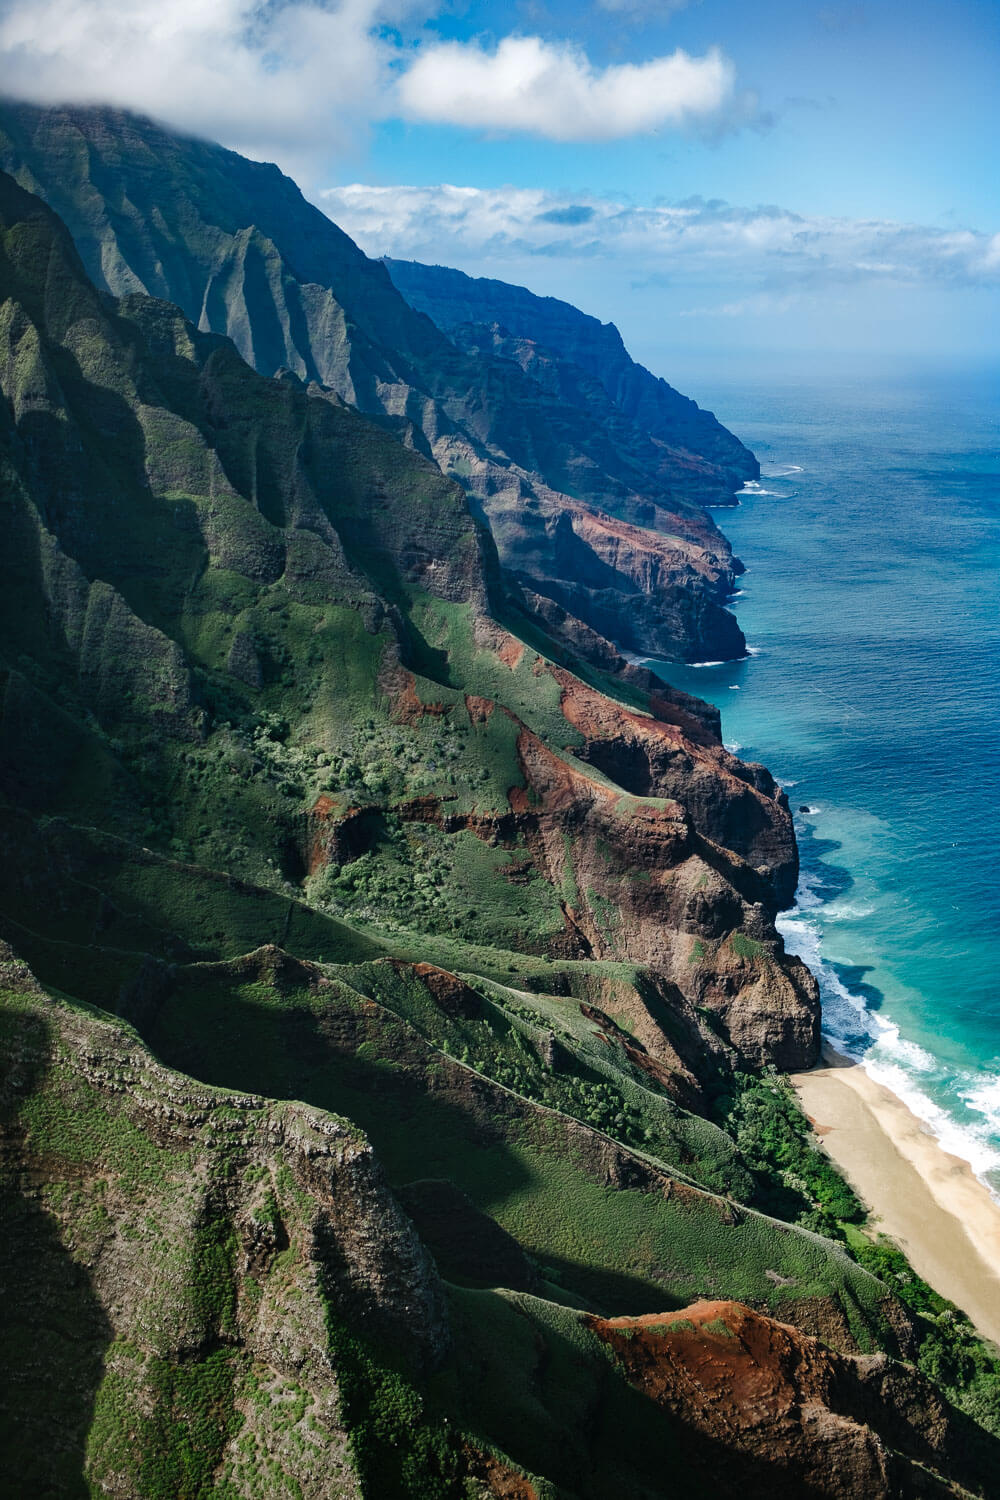 Kauai coastline from the helicopter